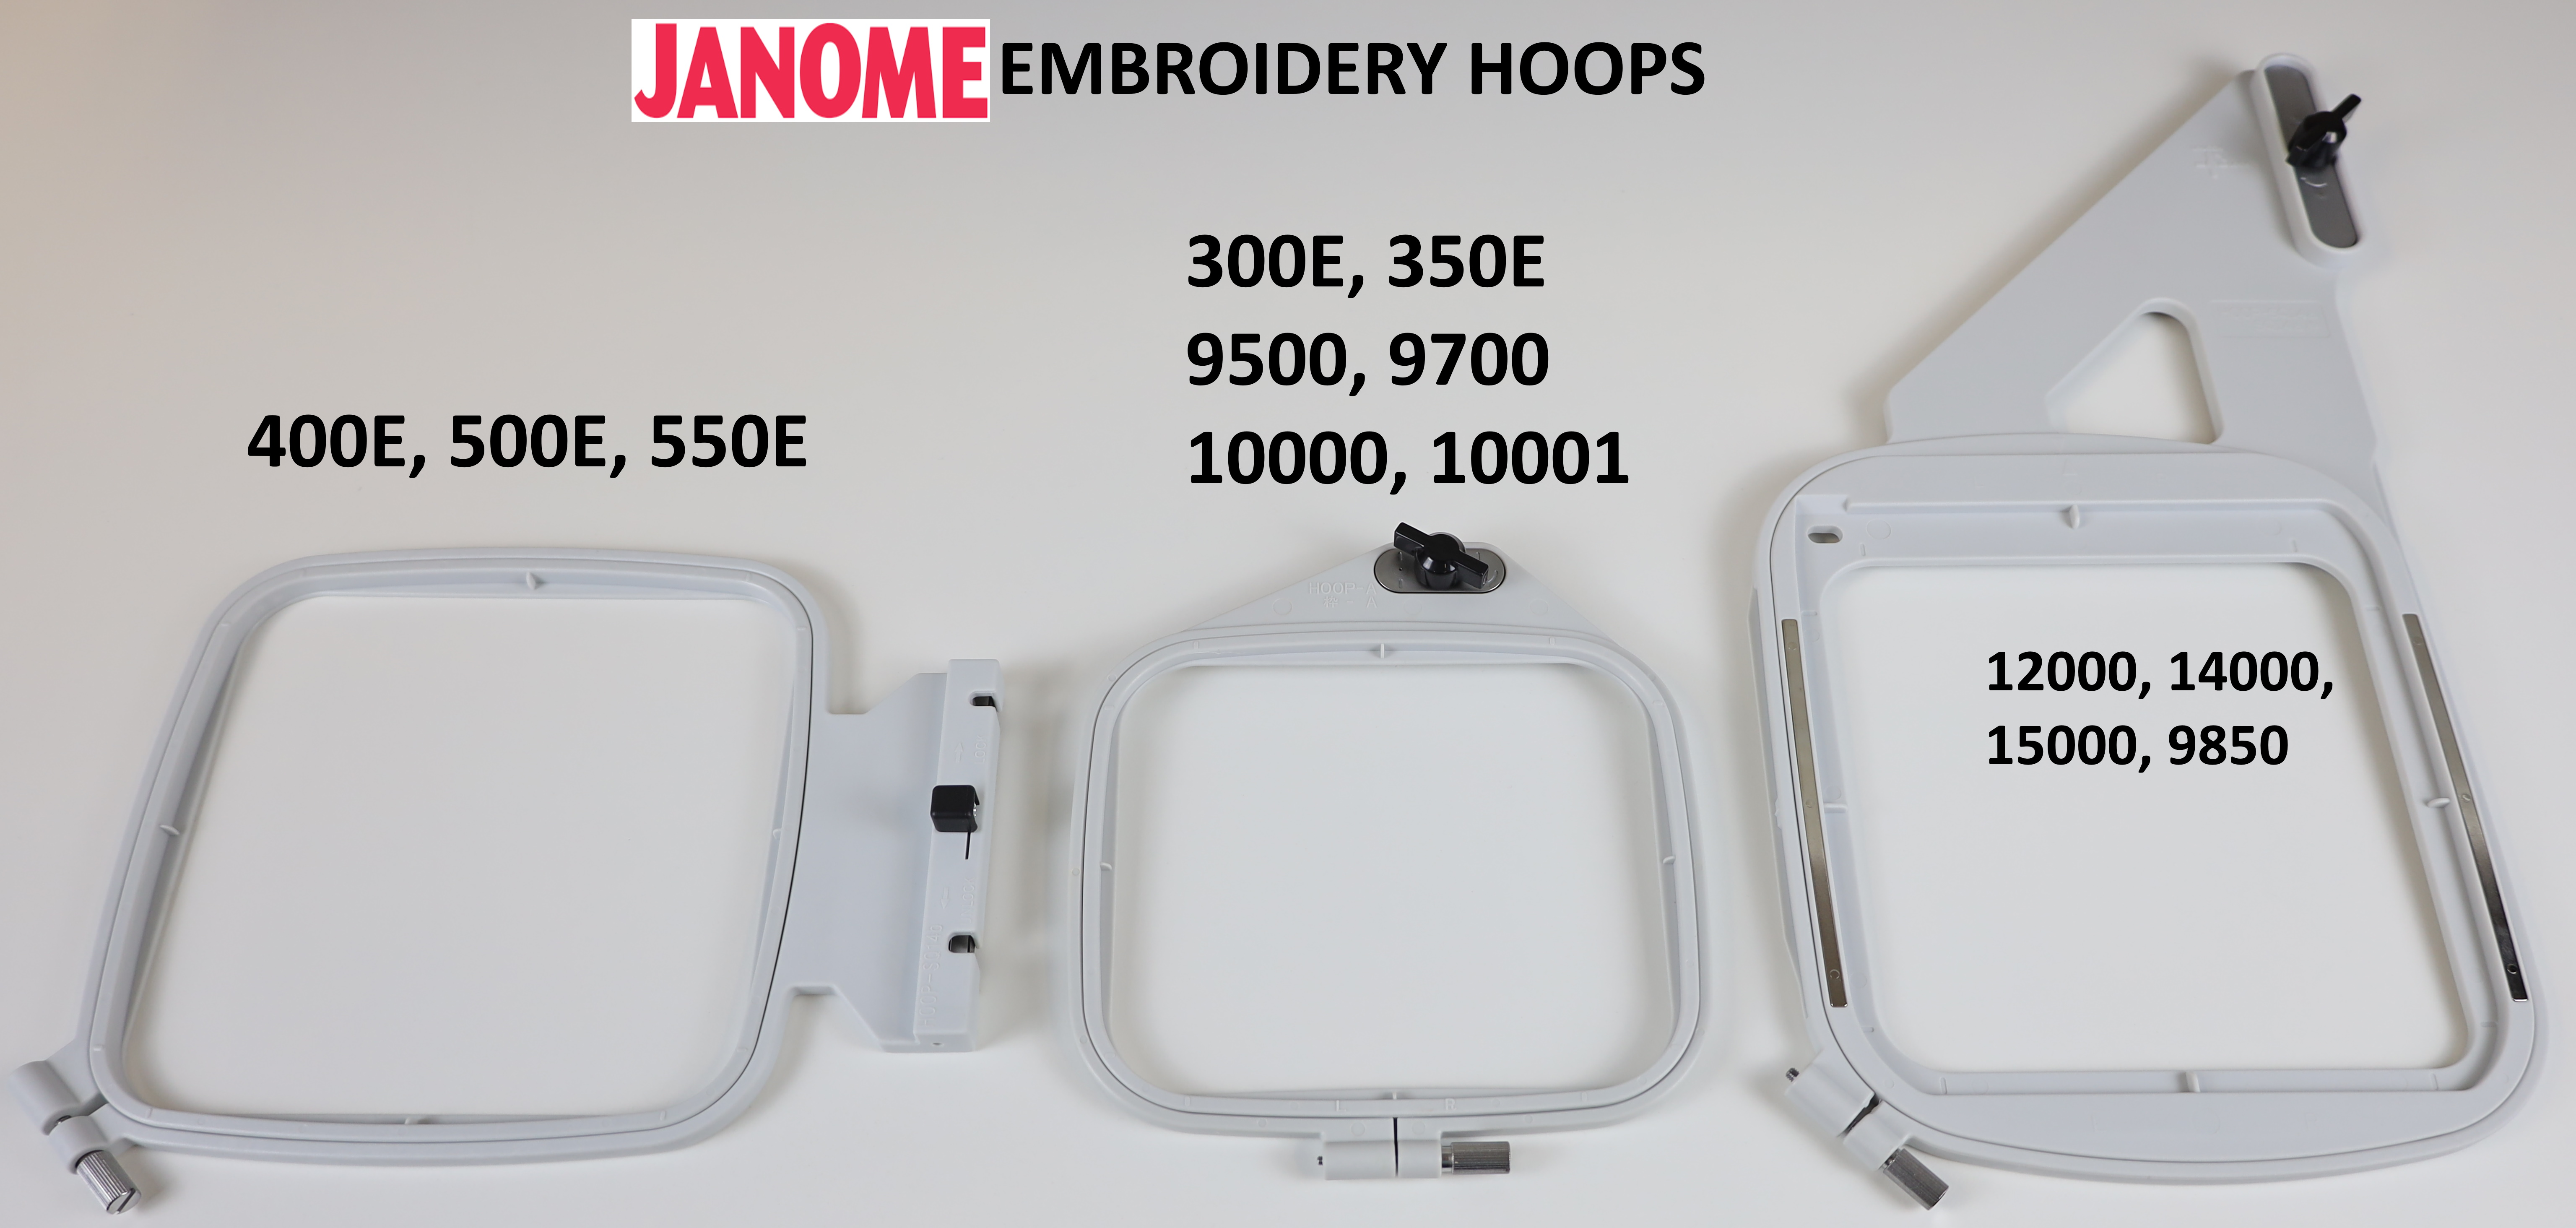 Janome Embroidery Machine Hoops